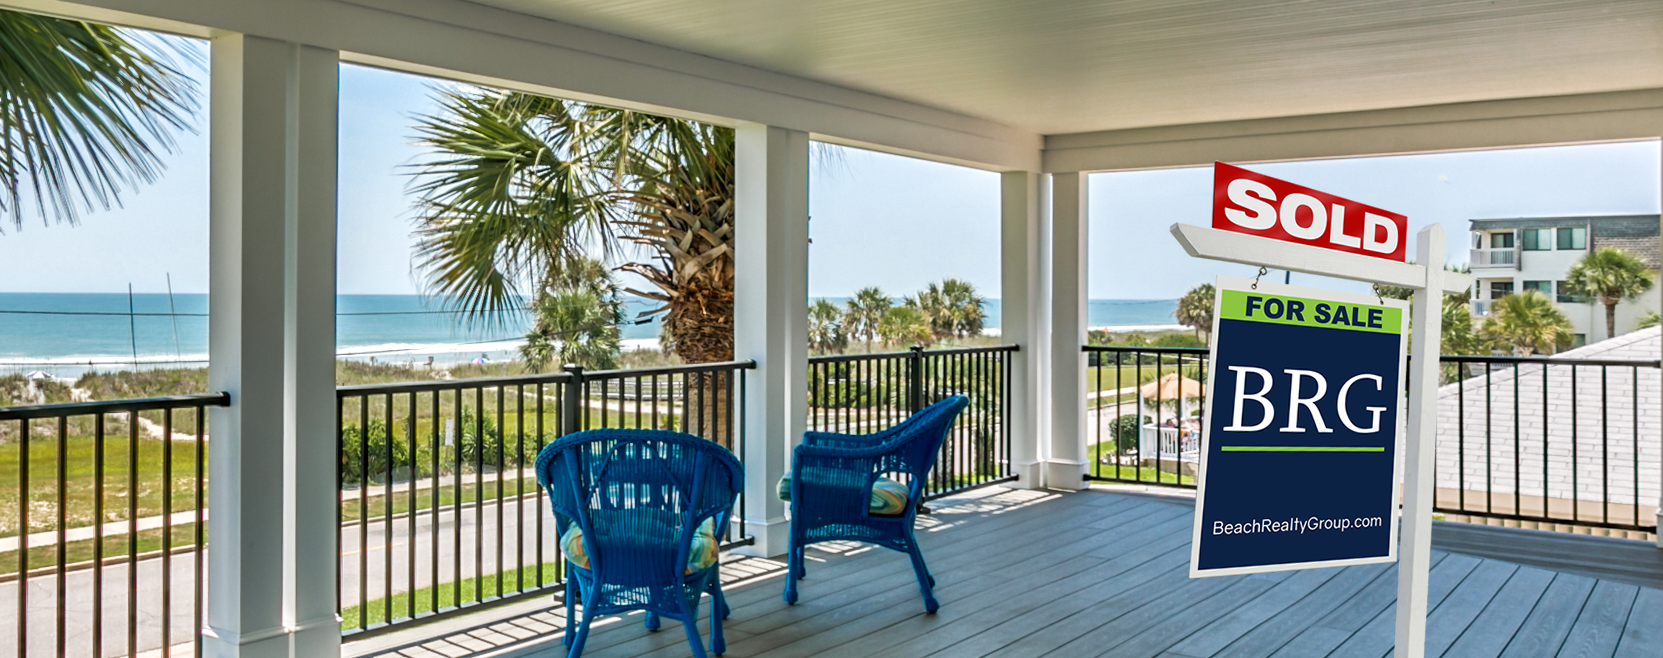 Real Estate around Myrtle Beach - Beach Realty Group